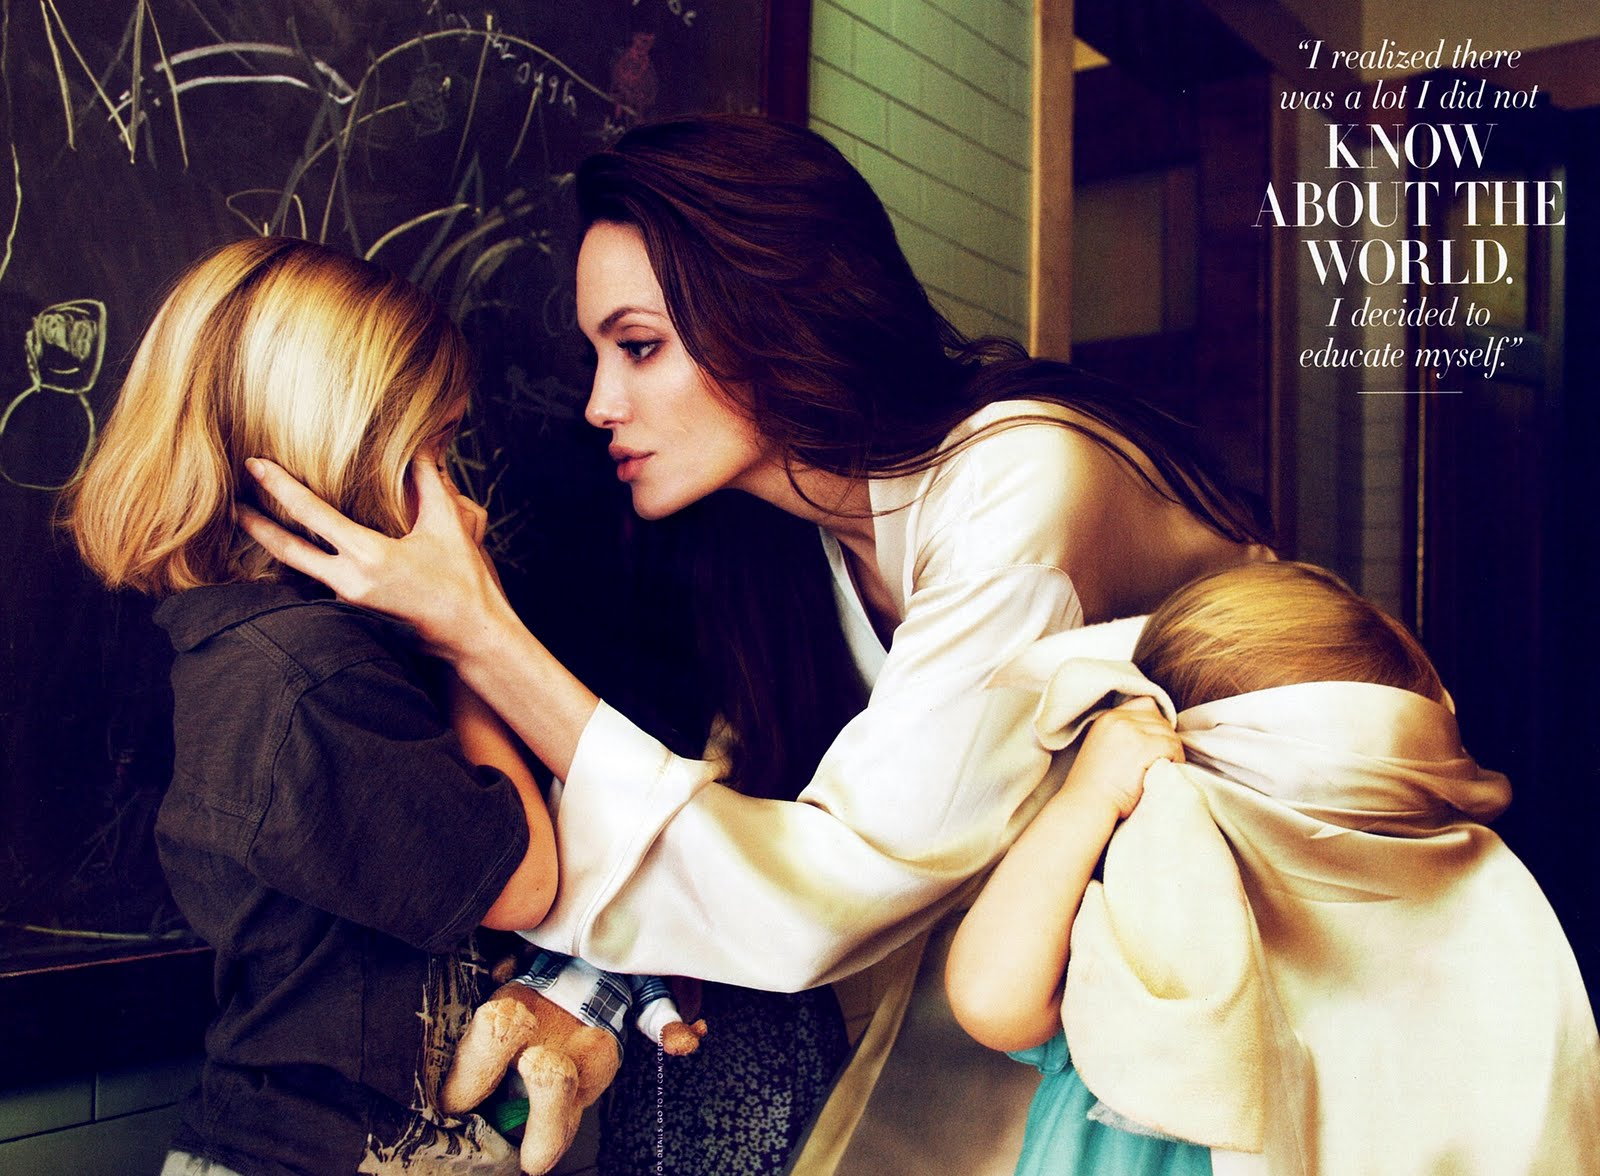 http://4.bp.blogspot.com/-20IT2e8khYg/TnDHOmsEq6I/AAAAAAAAAOI/KUDk_yi99kg/s1600/golden-eye-angelina-jolie-vanity-fair-october-2011-6.jpg